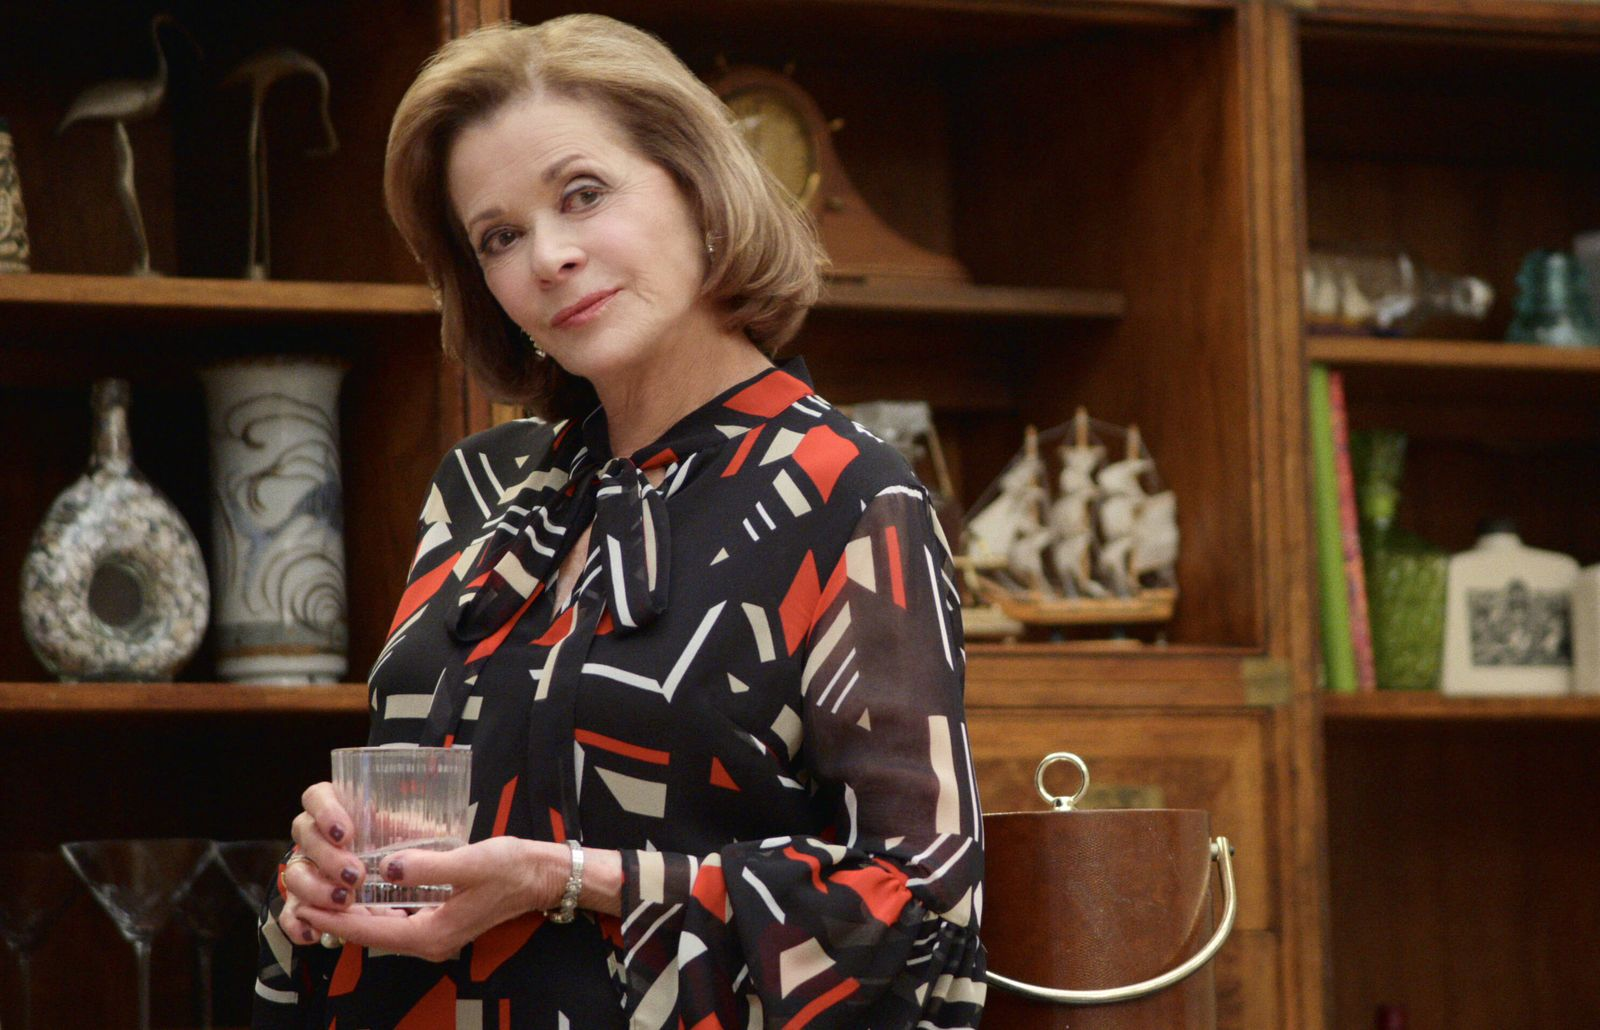 ARRESTED DEVELOPMENT, Jessica Walter, Unexpected Company , (Season 5, ep. 509, airs March 15, 2019). photo: Netflix / Co